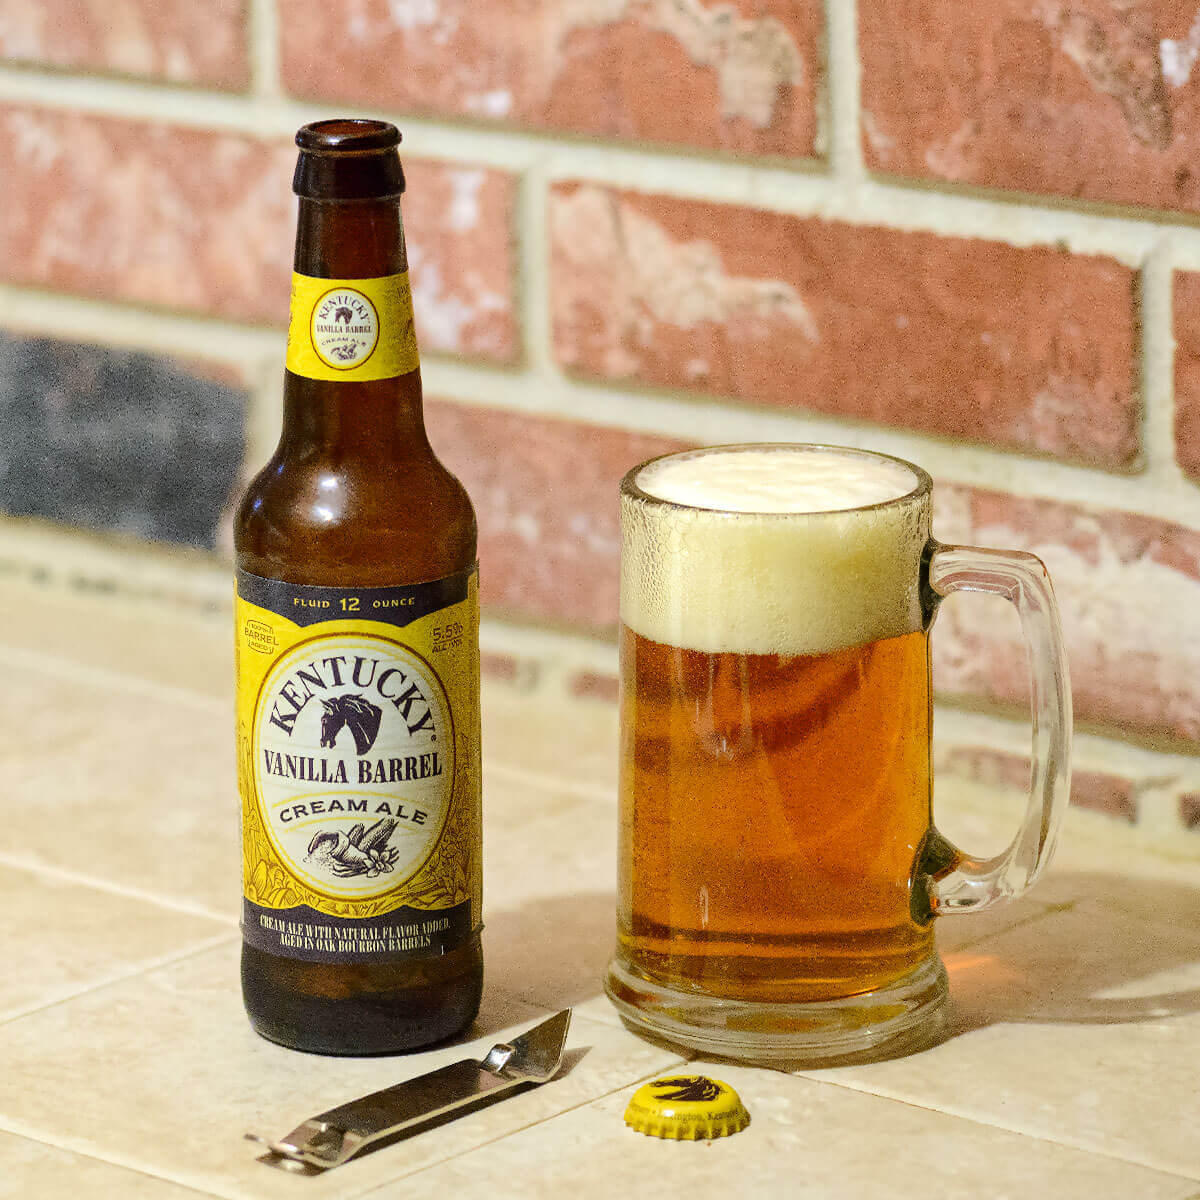 Kentucky Vanilla Barrel Cream Ale by Alltech Lexington Brewing And Distilling can satisfy a sweet tooth with sugary vanilla.